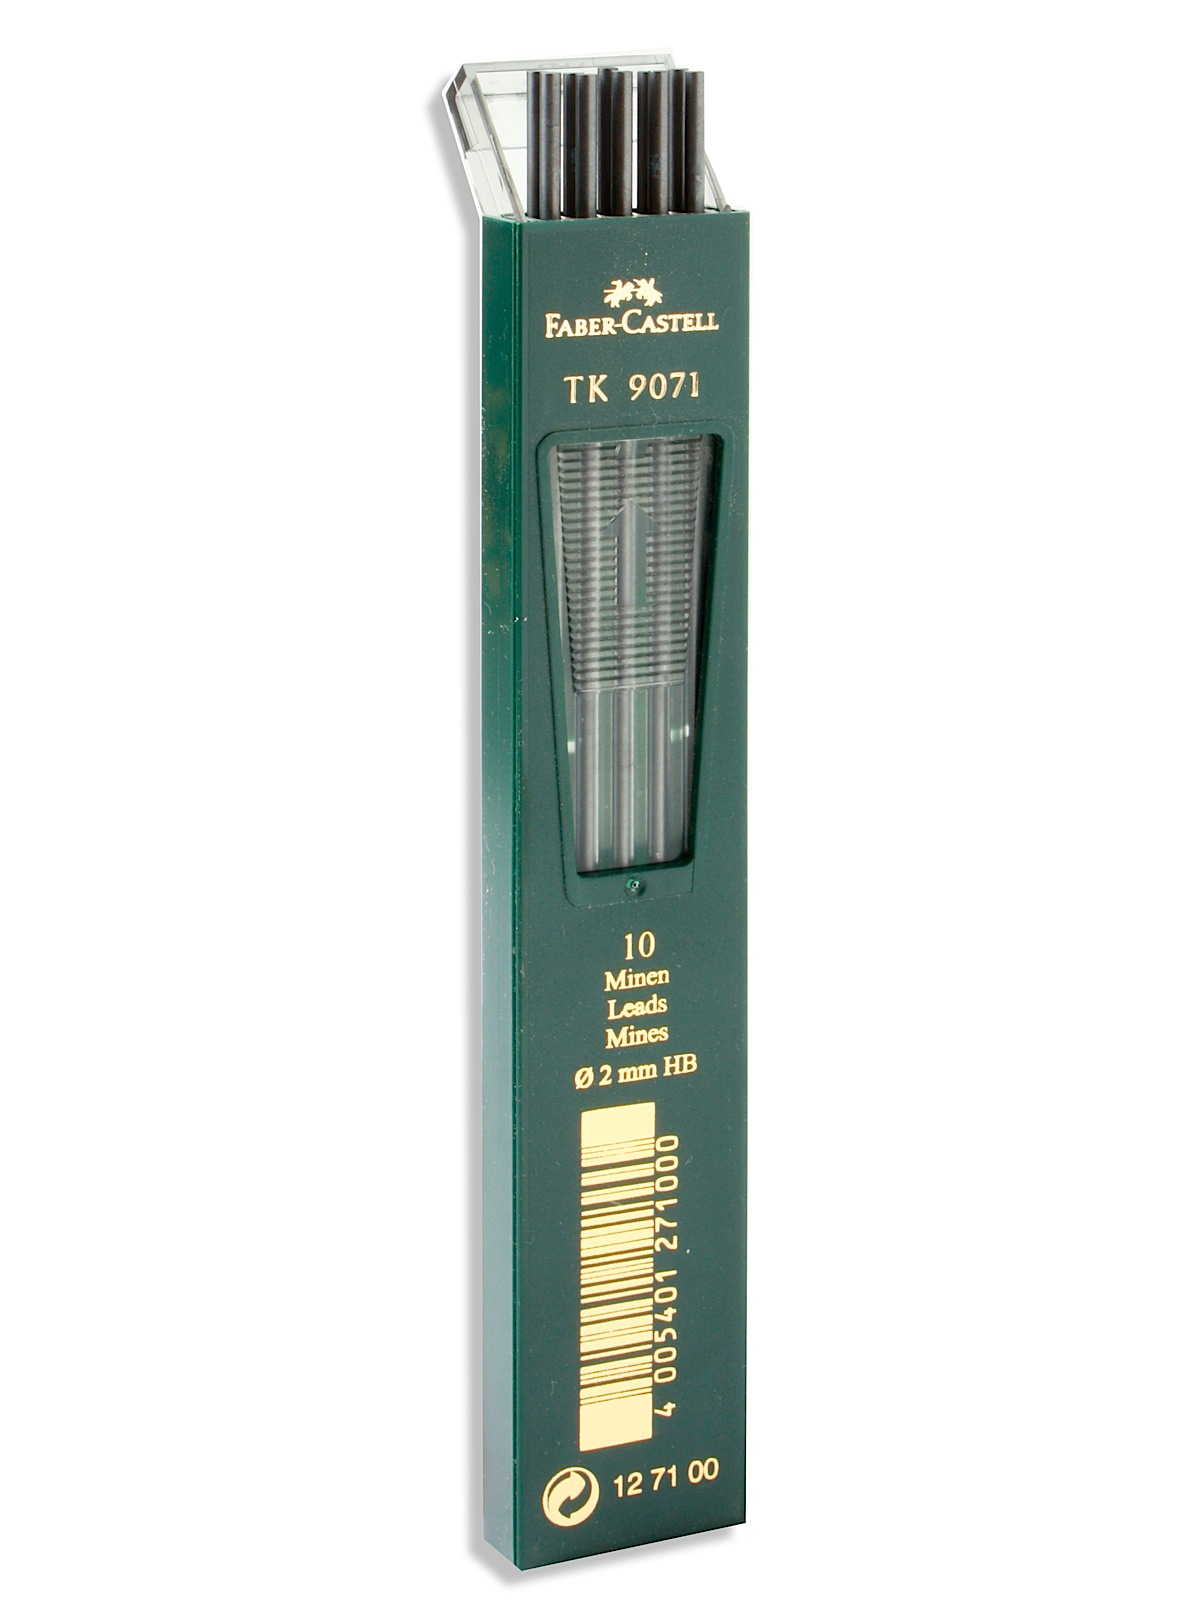 TK 9400 Clutch Drawing Pencil Leads